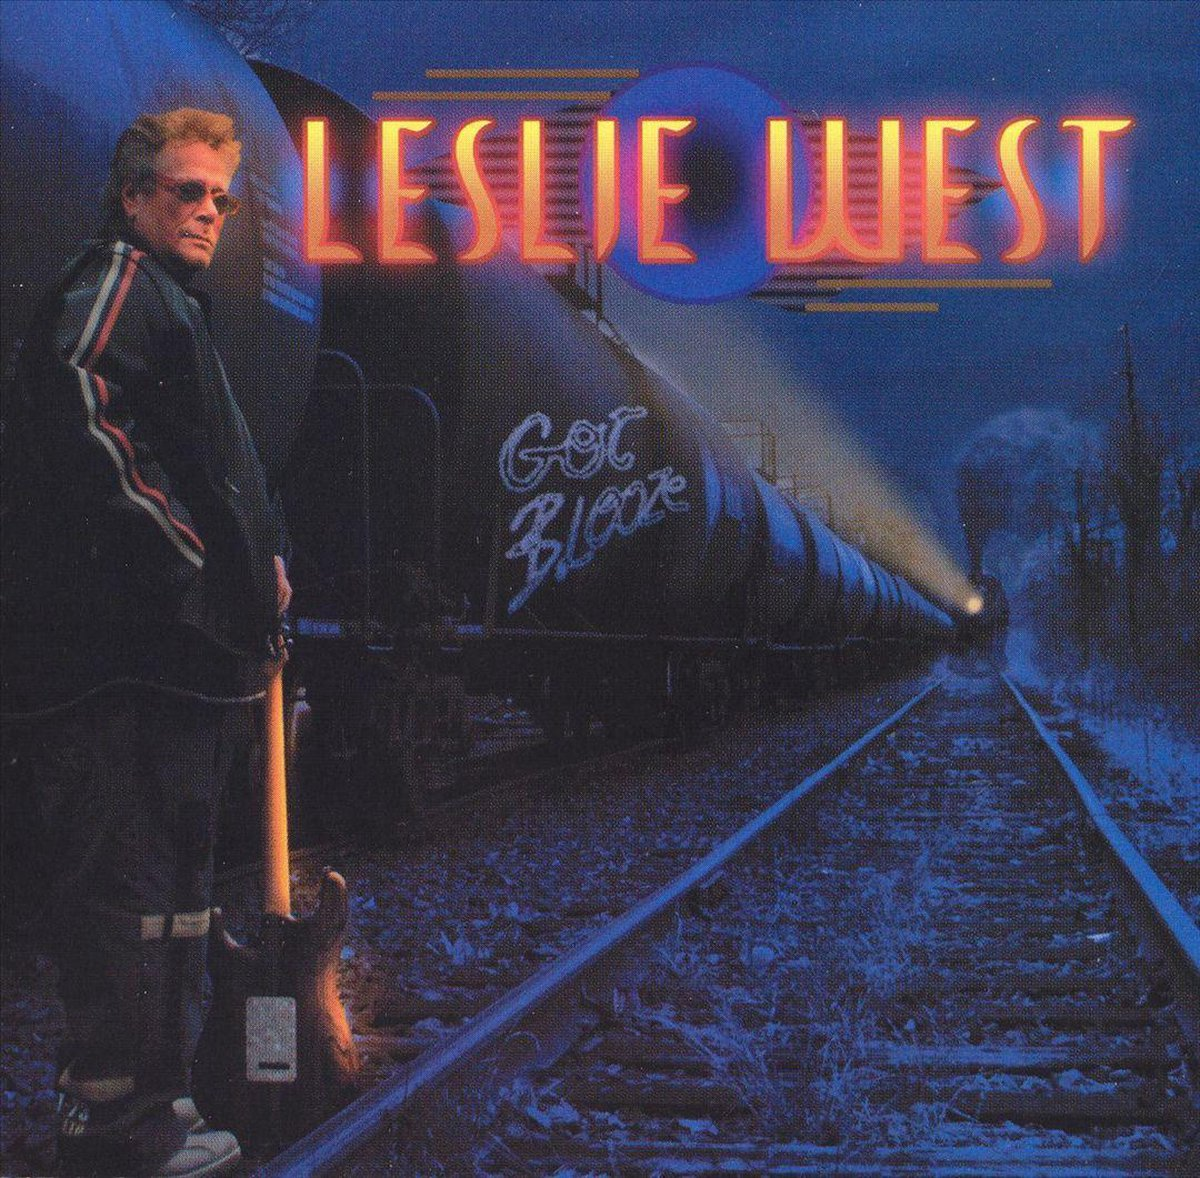 bol.com | Got Blooze, Leslie West | CD (album) | Muziek